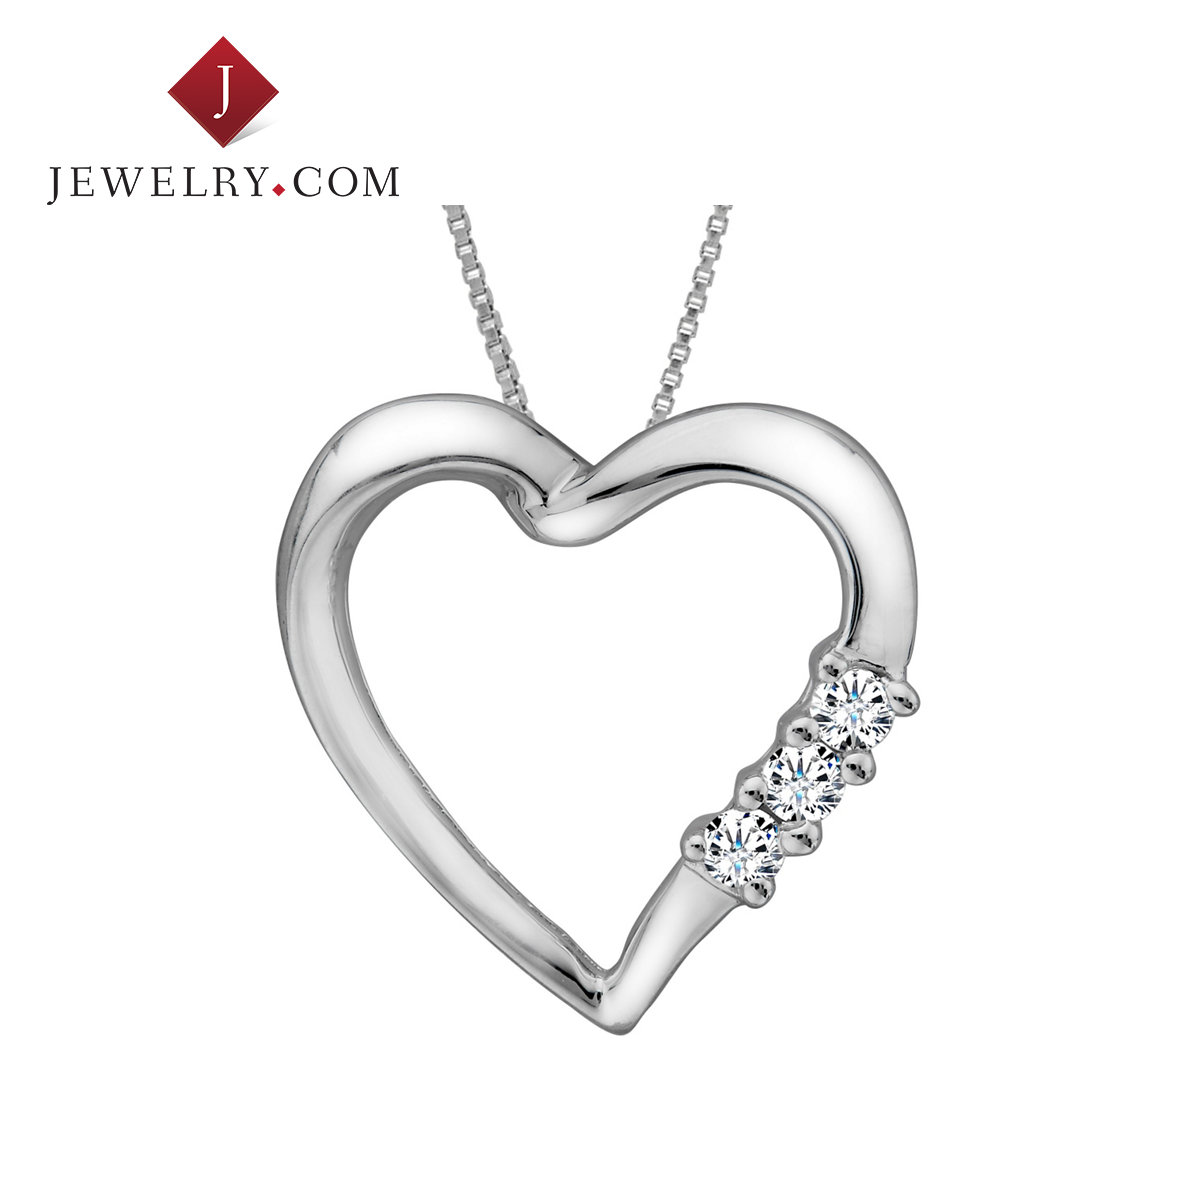 Jewelry.com official 0.1 karat k white gold diamond heart pendant simple fashion jewelry female models